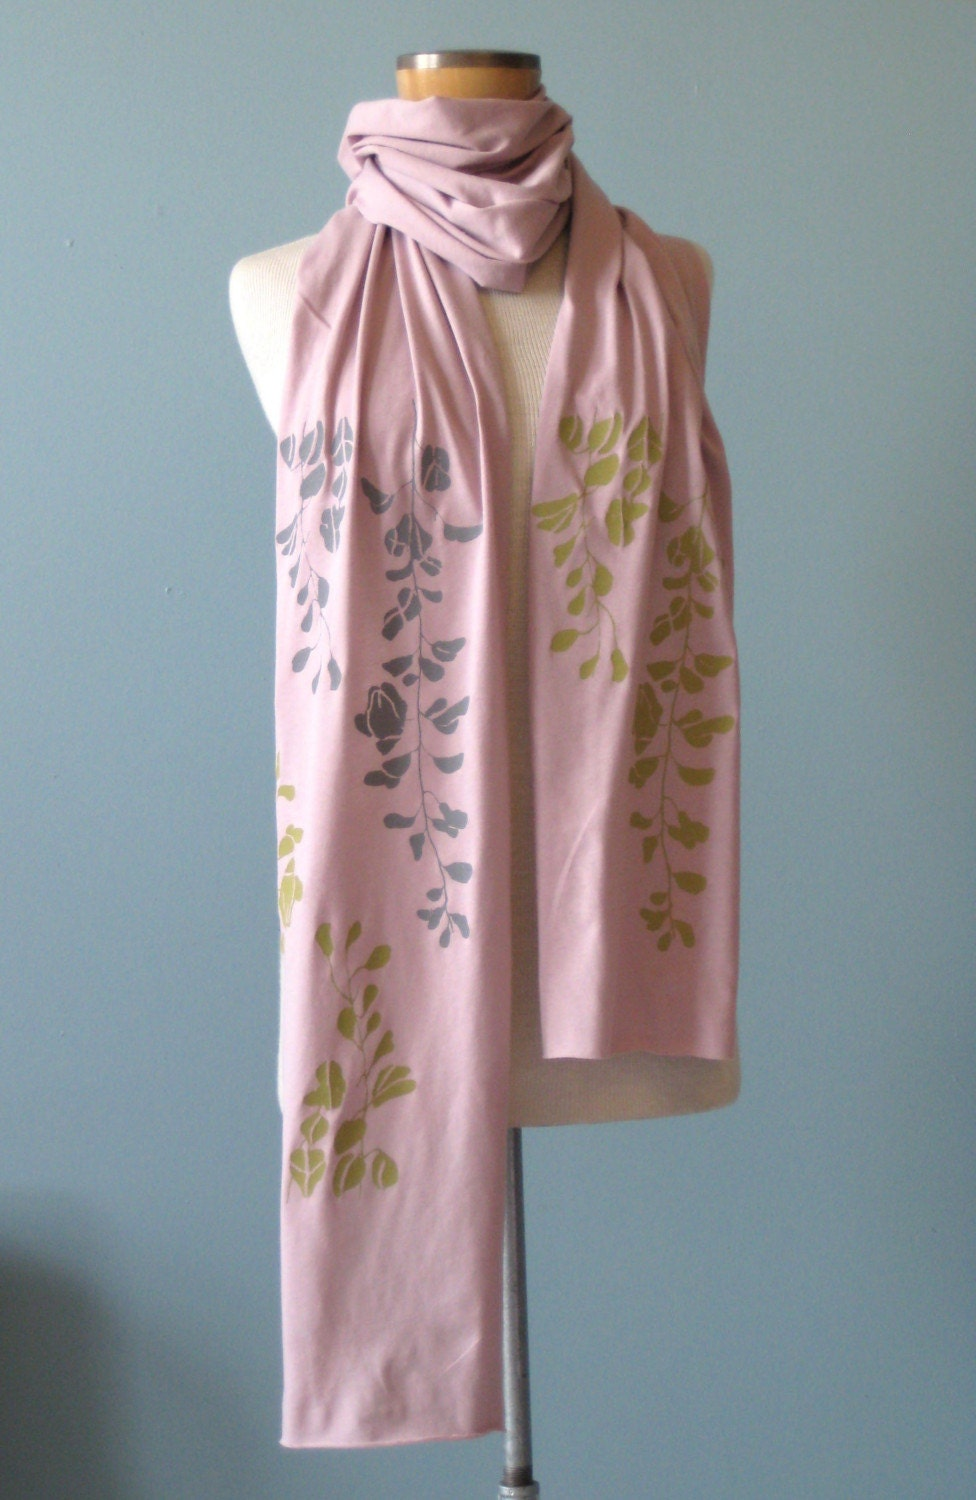 Pale Mauve Jersey Scarf with Wisteria Print